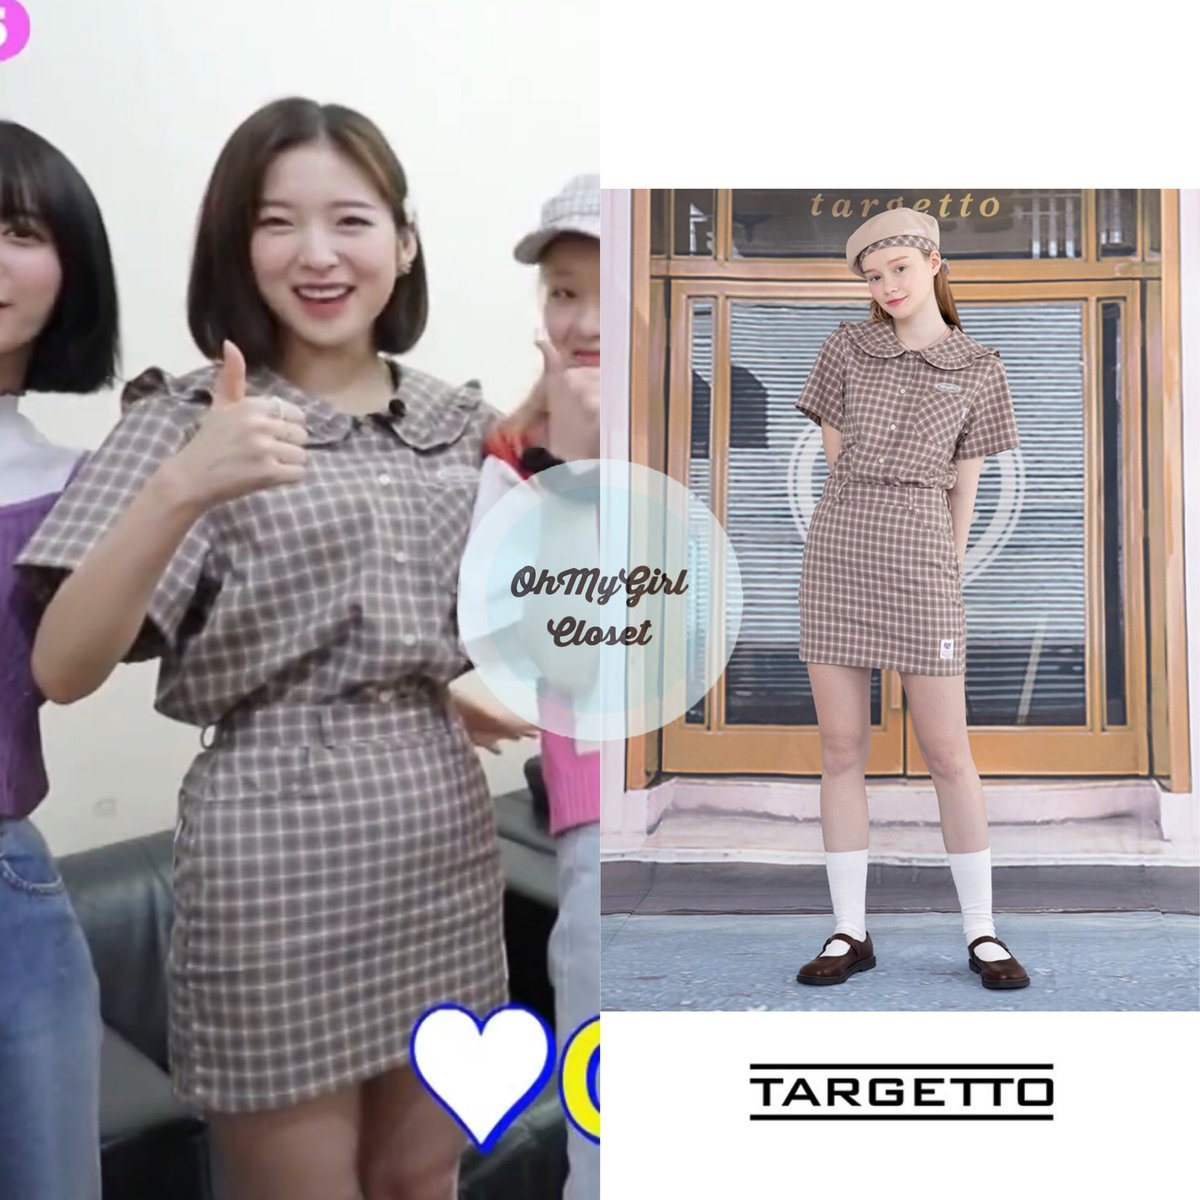 200605 #Arin - KCON:TACT star countdown video wearing  targetto - sailor check shirt ₩59,000 & skirt ₩52,000 #ohmygirl_targetto #omgc_arin  #OHMYGIRL #NONSTOP #아린 #오마이걸 #살짝설렜어 #ohmygirlfashion #ohmygirlstyle #ohmygirlcloset #퀸덤 #Queendom pic.twitter.com/8Zghs6ubWD